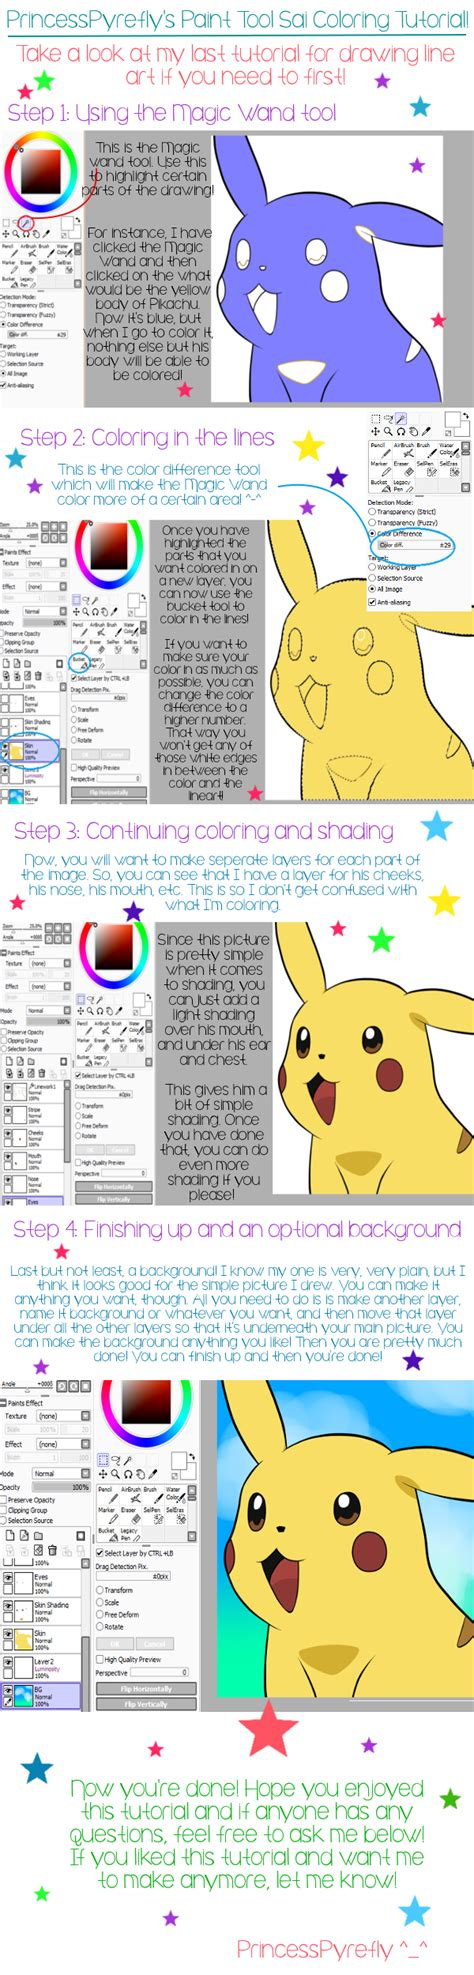 paint tool sai tutorial for beginners deviantart paint tool sai coloring tutorial by princesspyrefly on